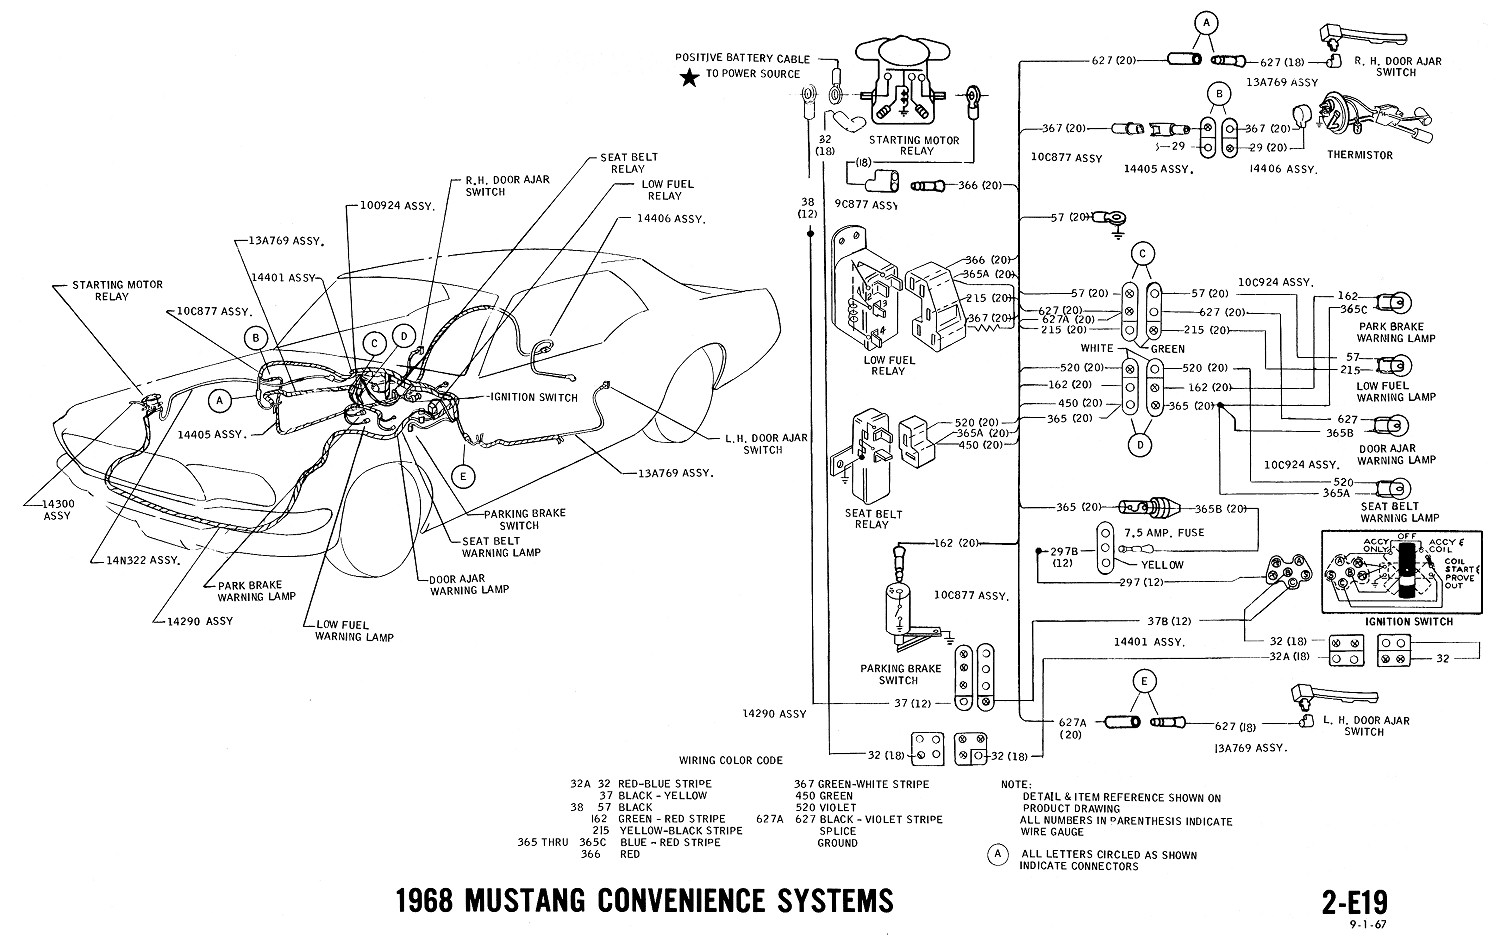 E19 1968 mustang wiring diagrams evolving software 1968 mustang alternator wiring diagram at webbmarketing.co